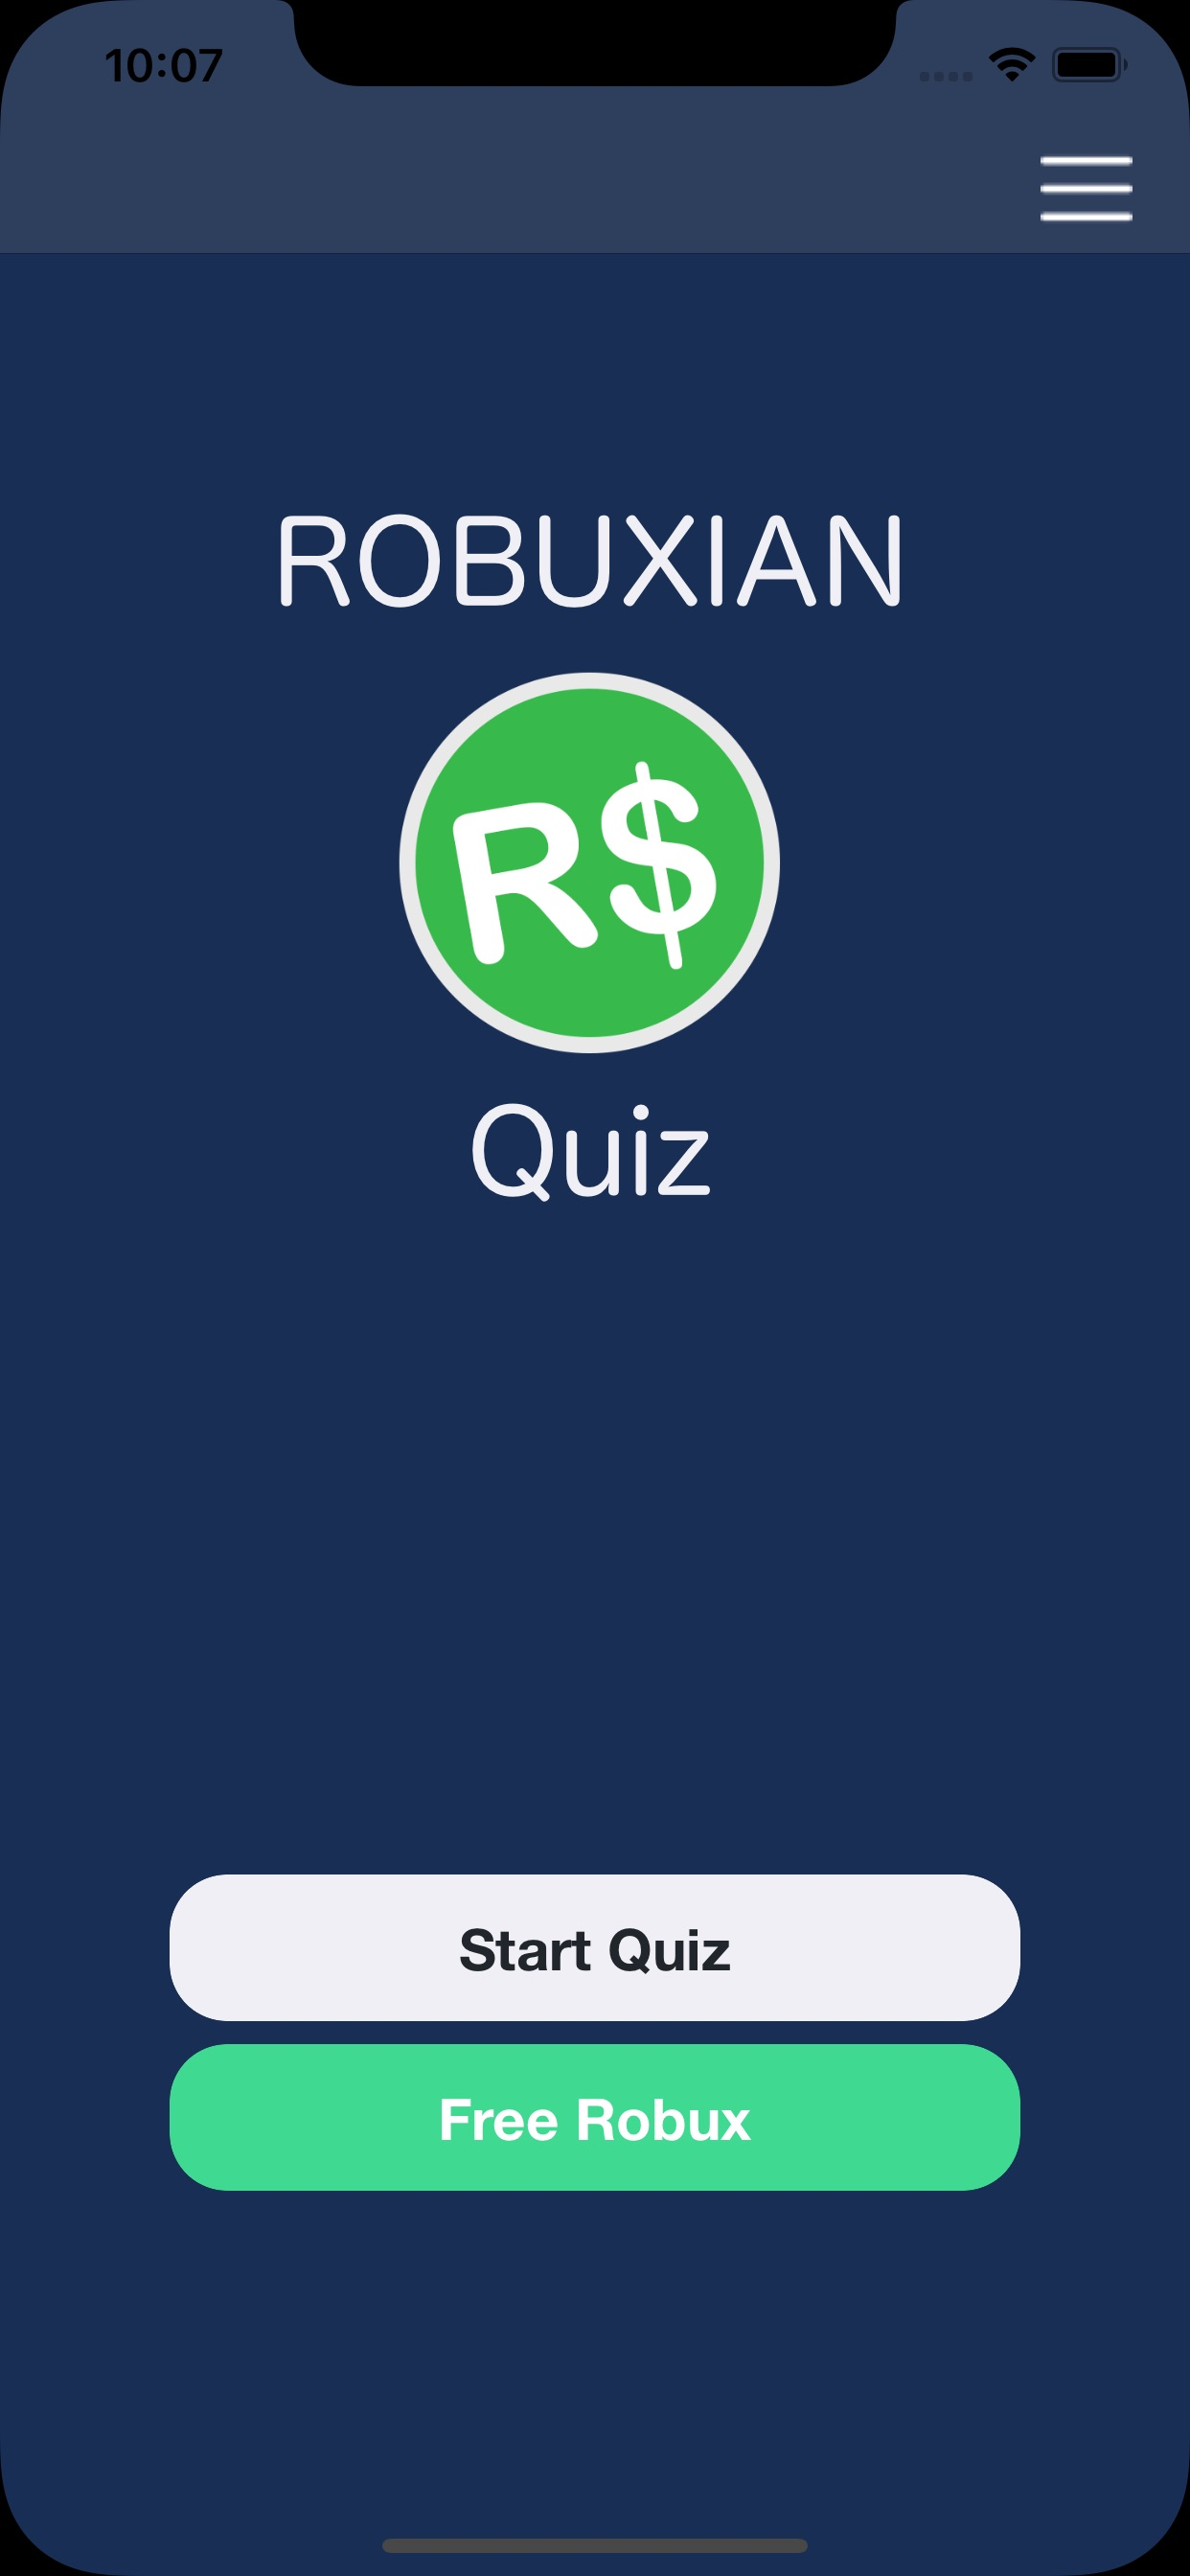 Quiz For Roblox Robux App Store Review Aso Revenue Downloads Appfollow Robuxian Quiz For Robux App Store Review Aso Revenue Downloads Appfollow